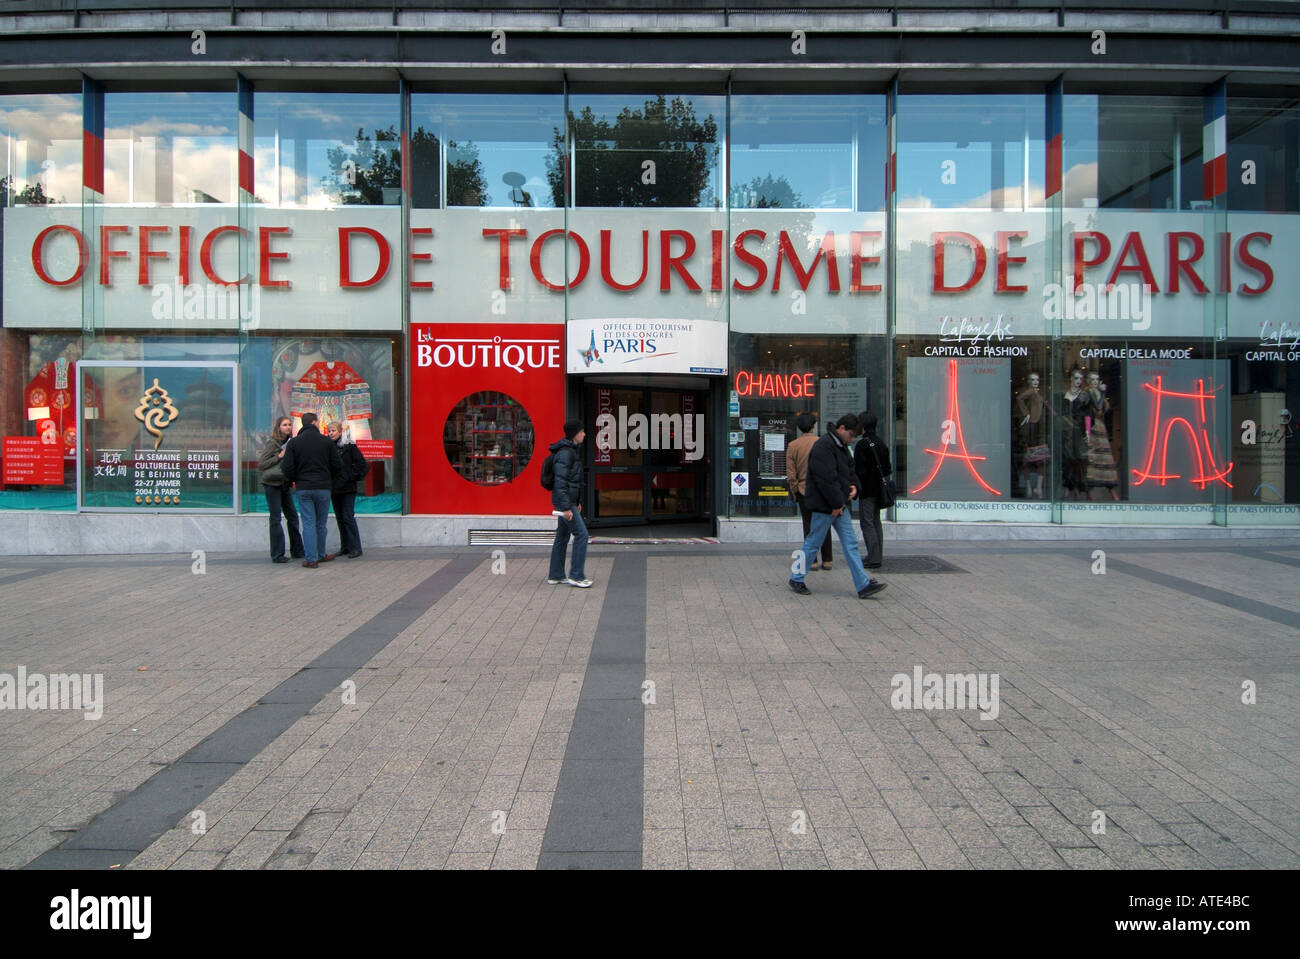 Paris avenue champs elysees office de tourisme de paris - Office de tourisme chateaumeillant ...